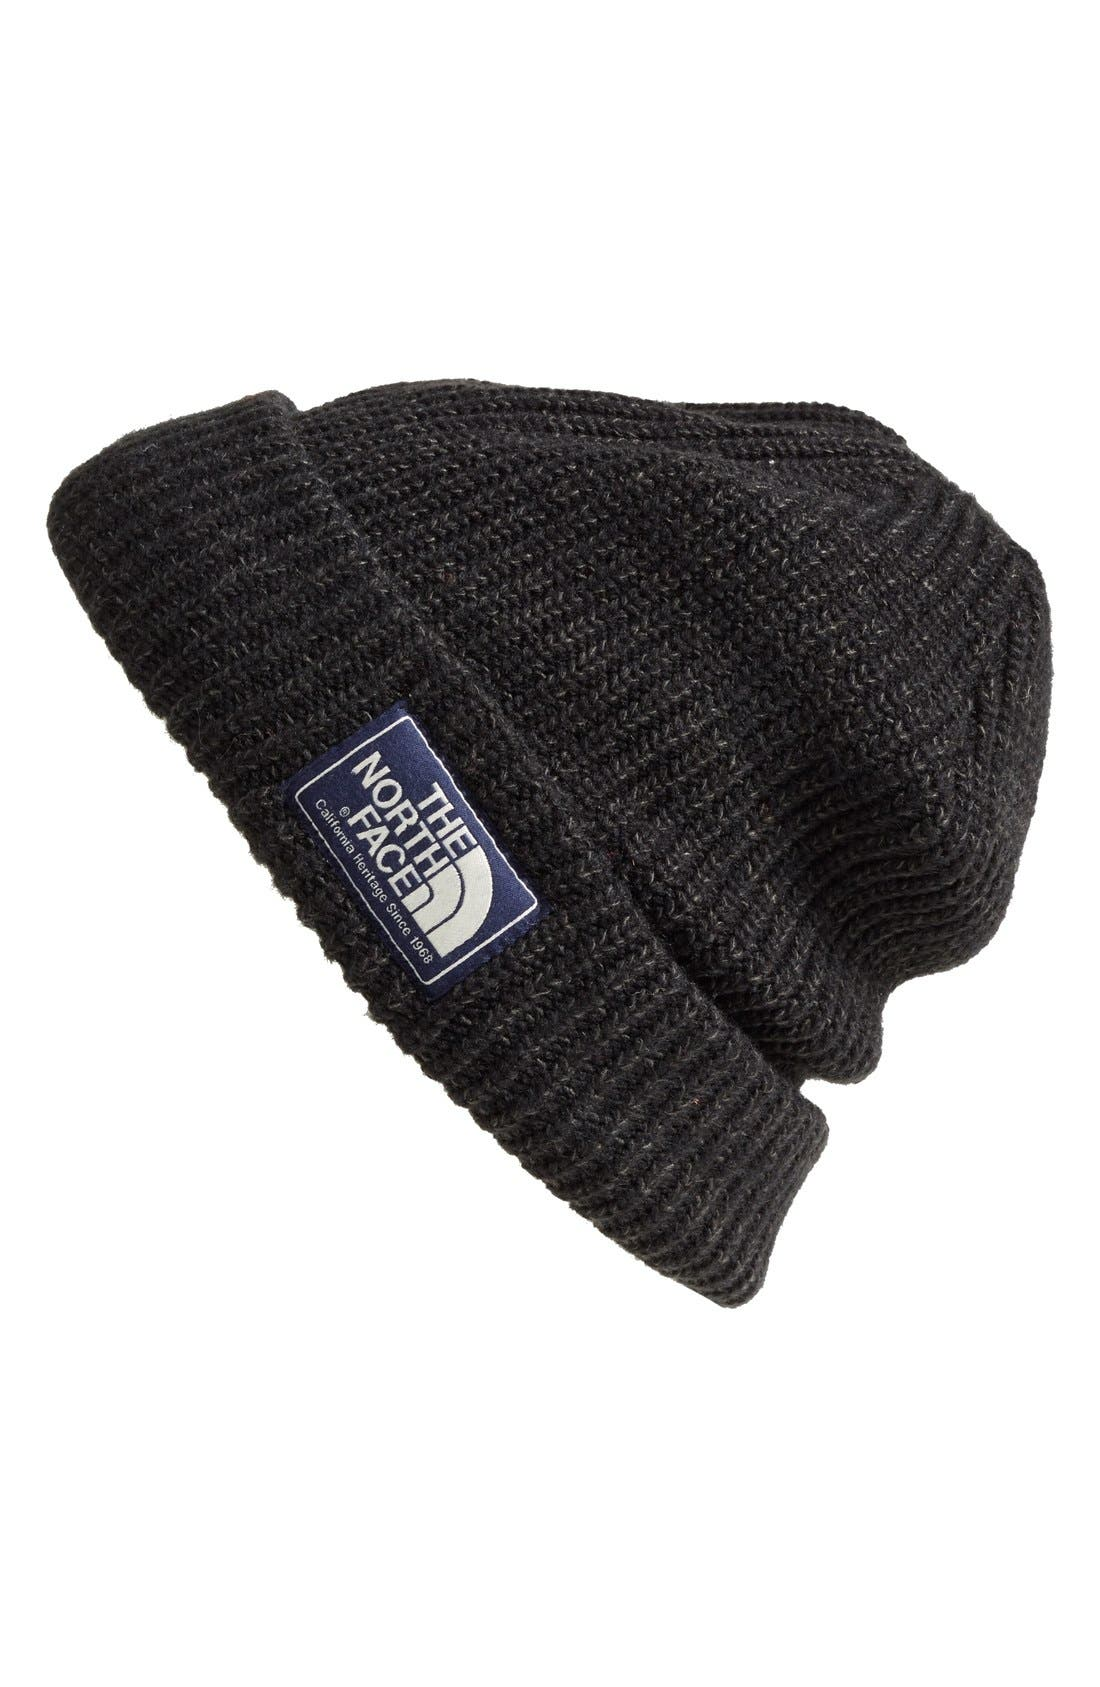 The North Face 'Salty Dog' Beanie